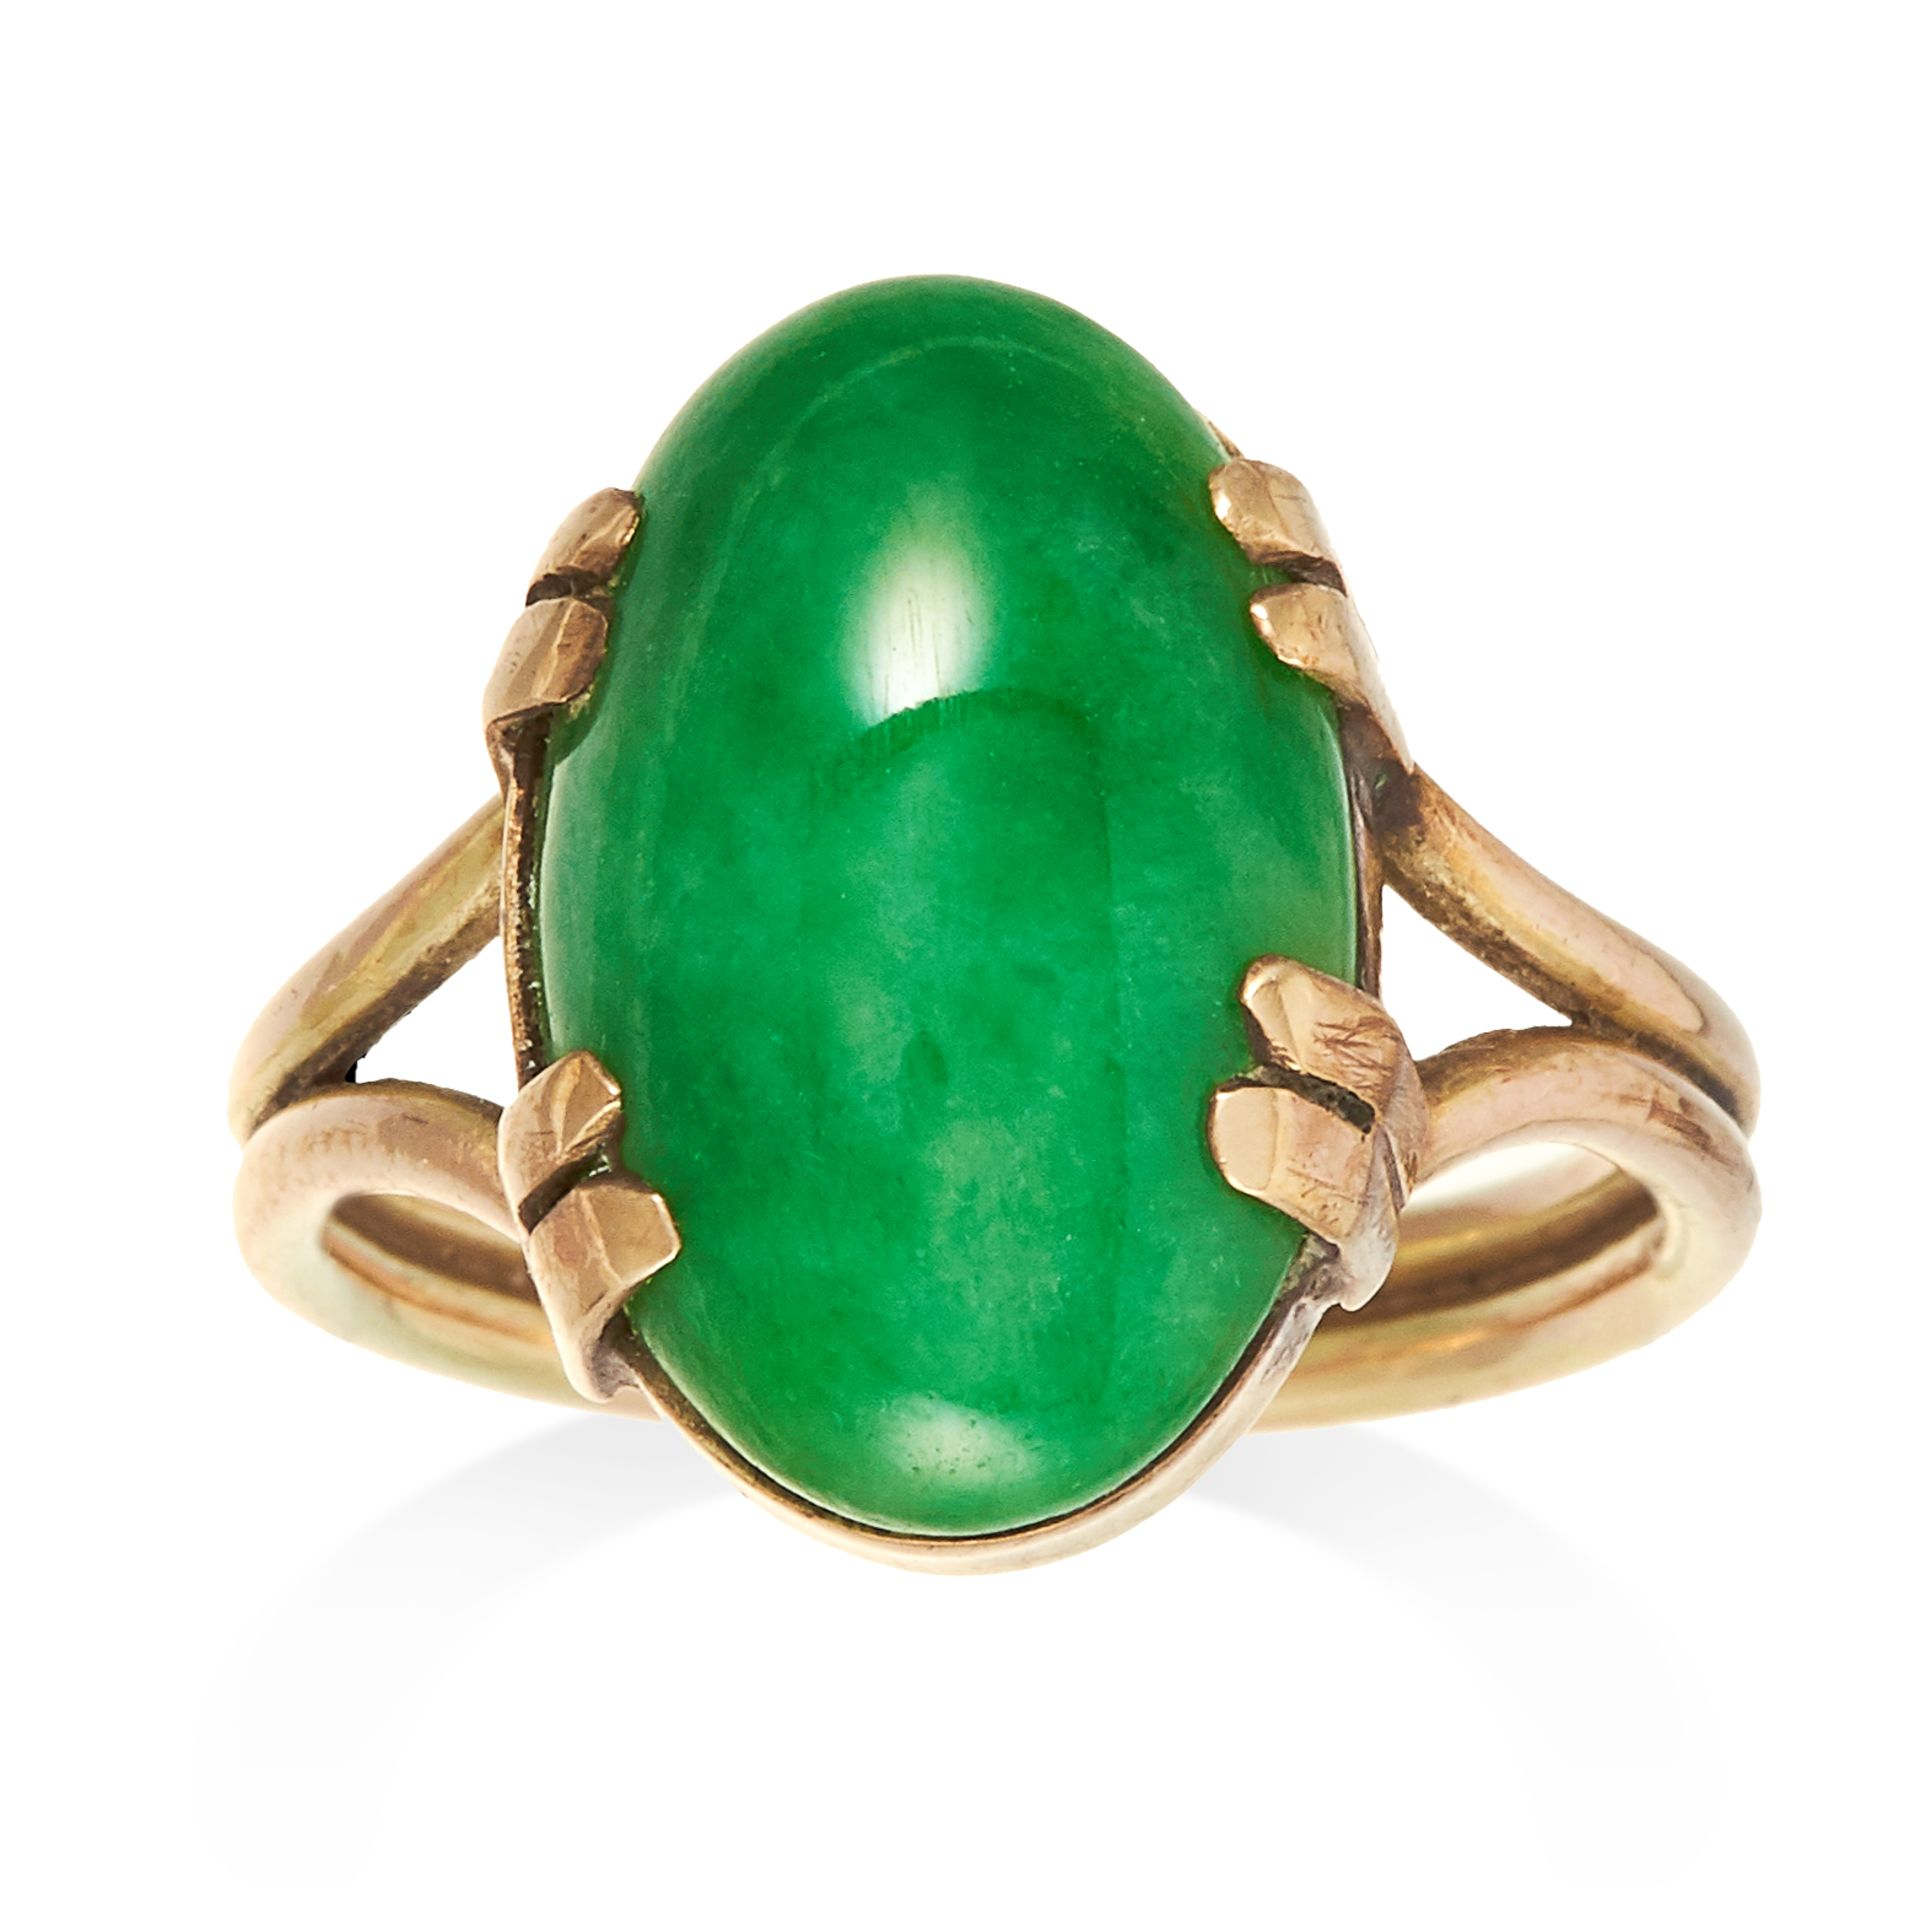 JADEITE JADE DRESS RING set with an oval jade cabochon, size Q / 8, 5.49g. Gemmological report: